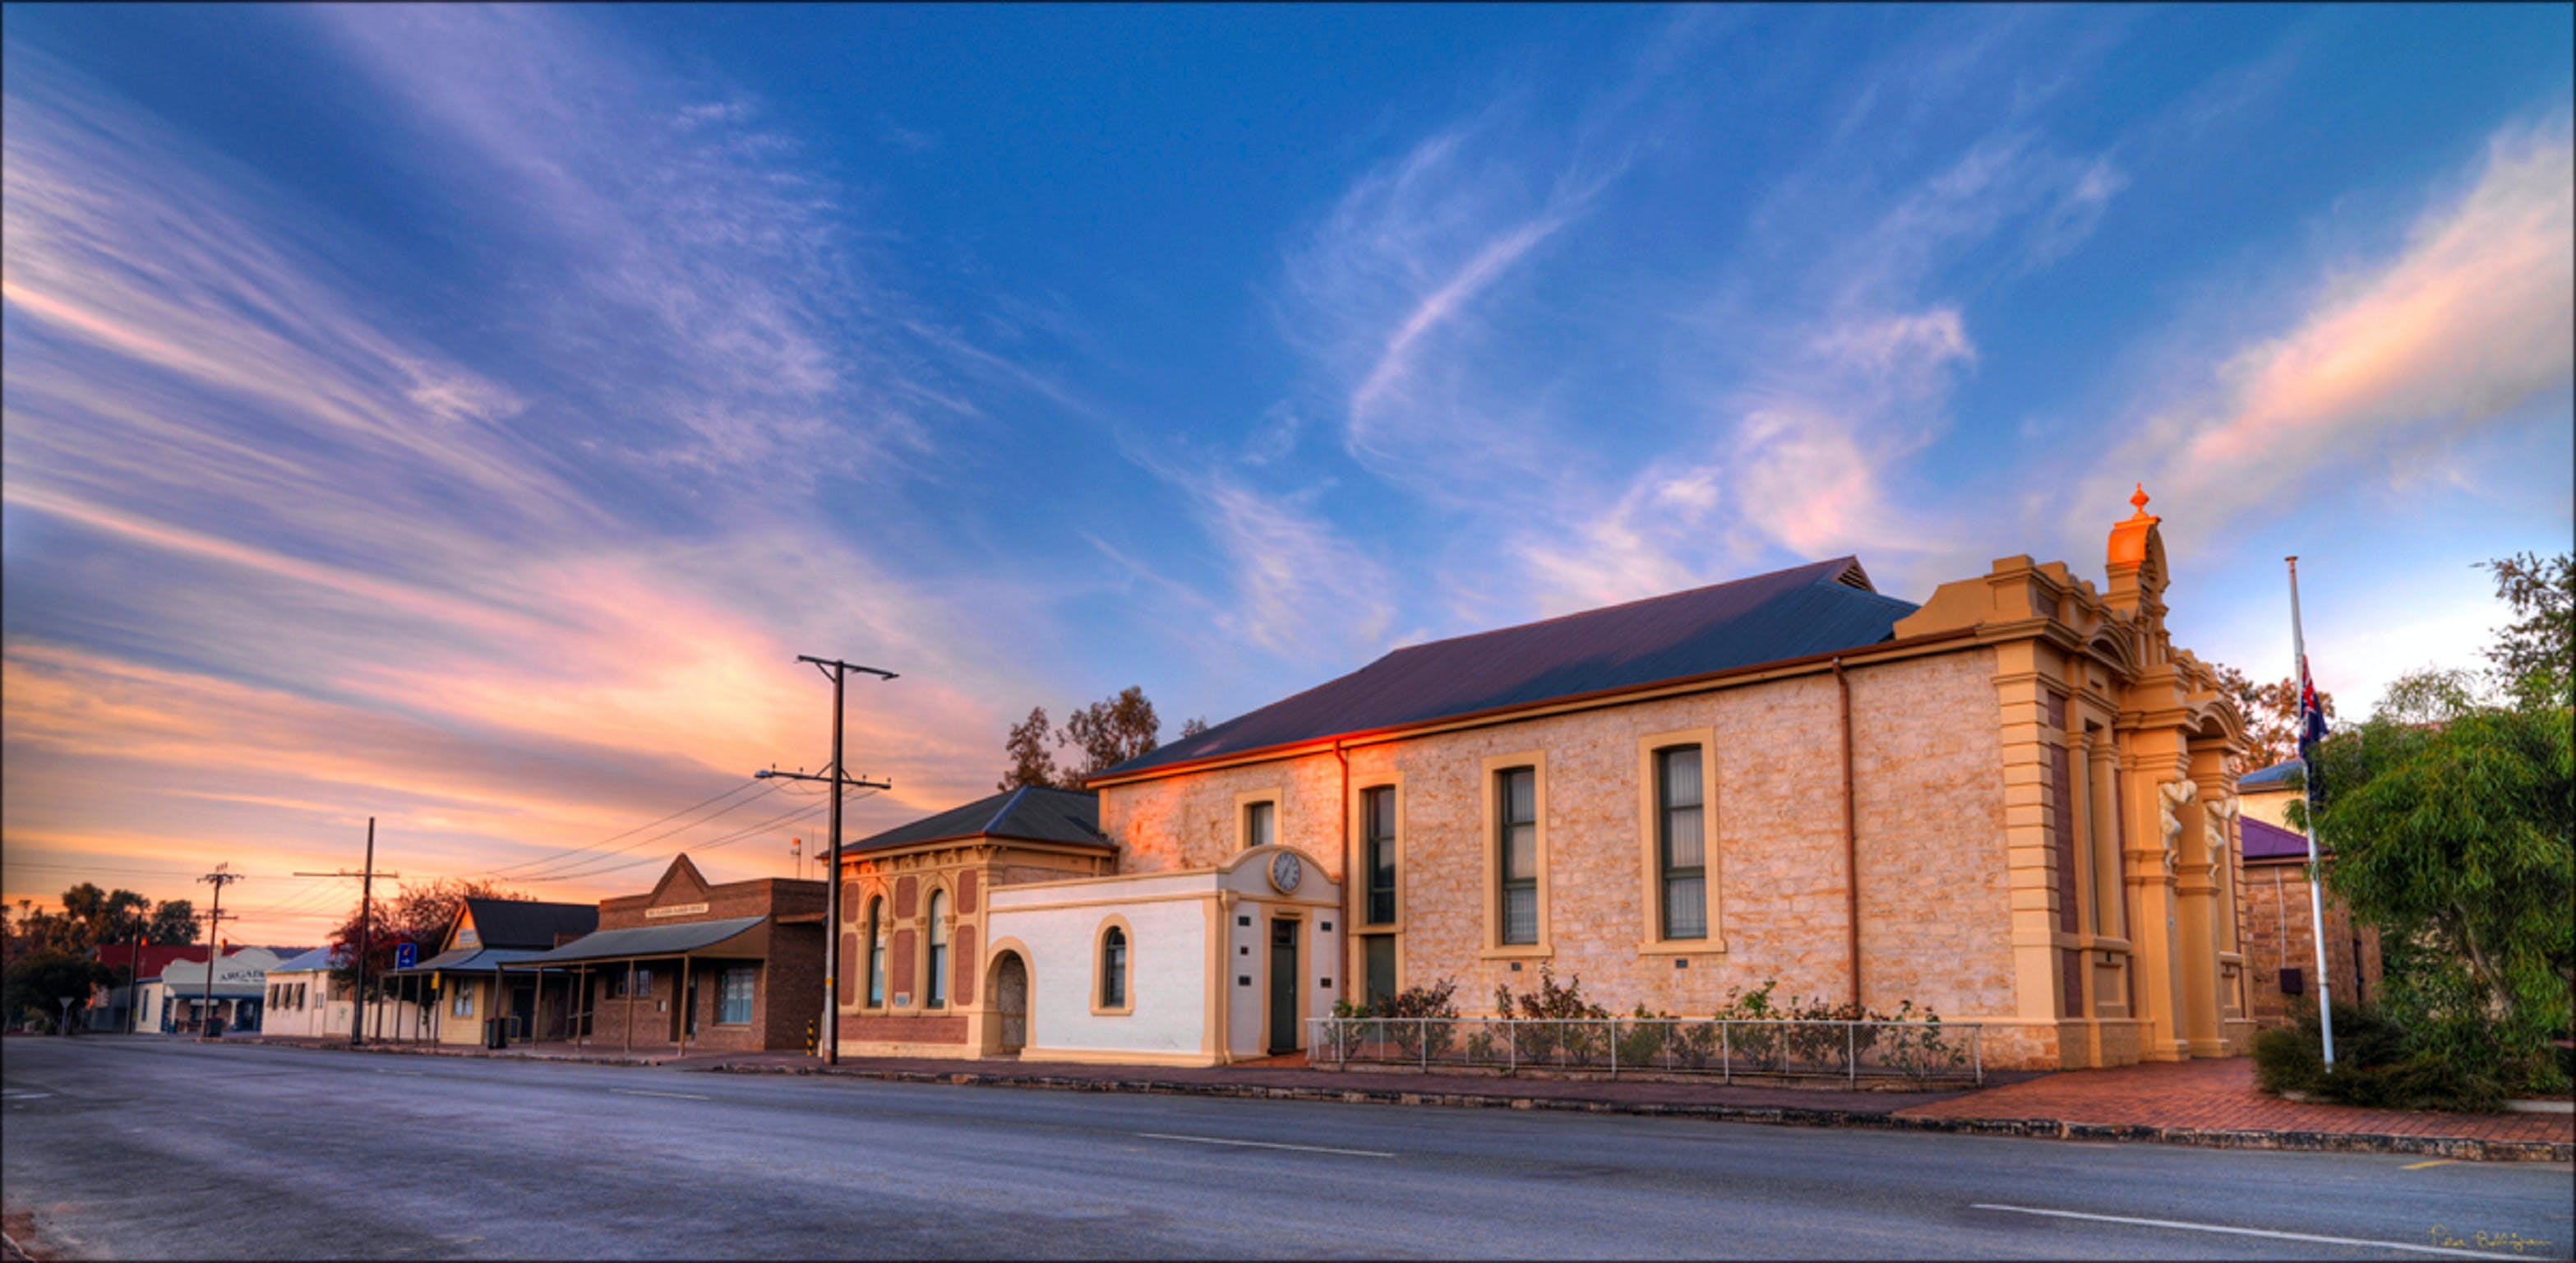 Quorn Historic Building Walk - Broome Tourism